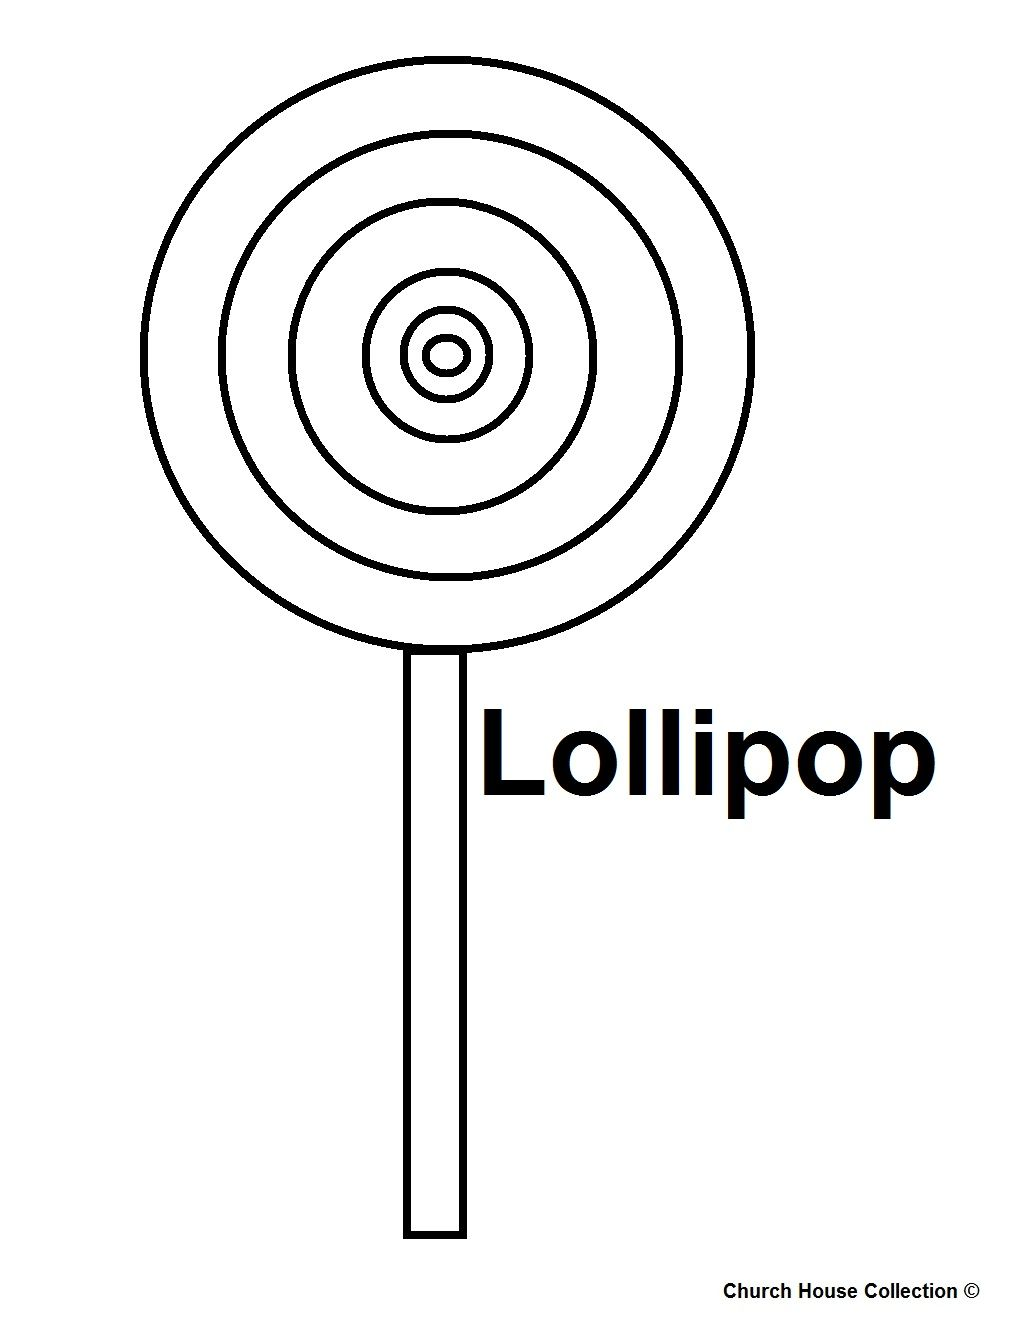 Lollipop Coloring Page Jpg 1 019 1 319 Pixels Coloring Pages